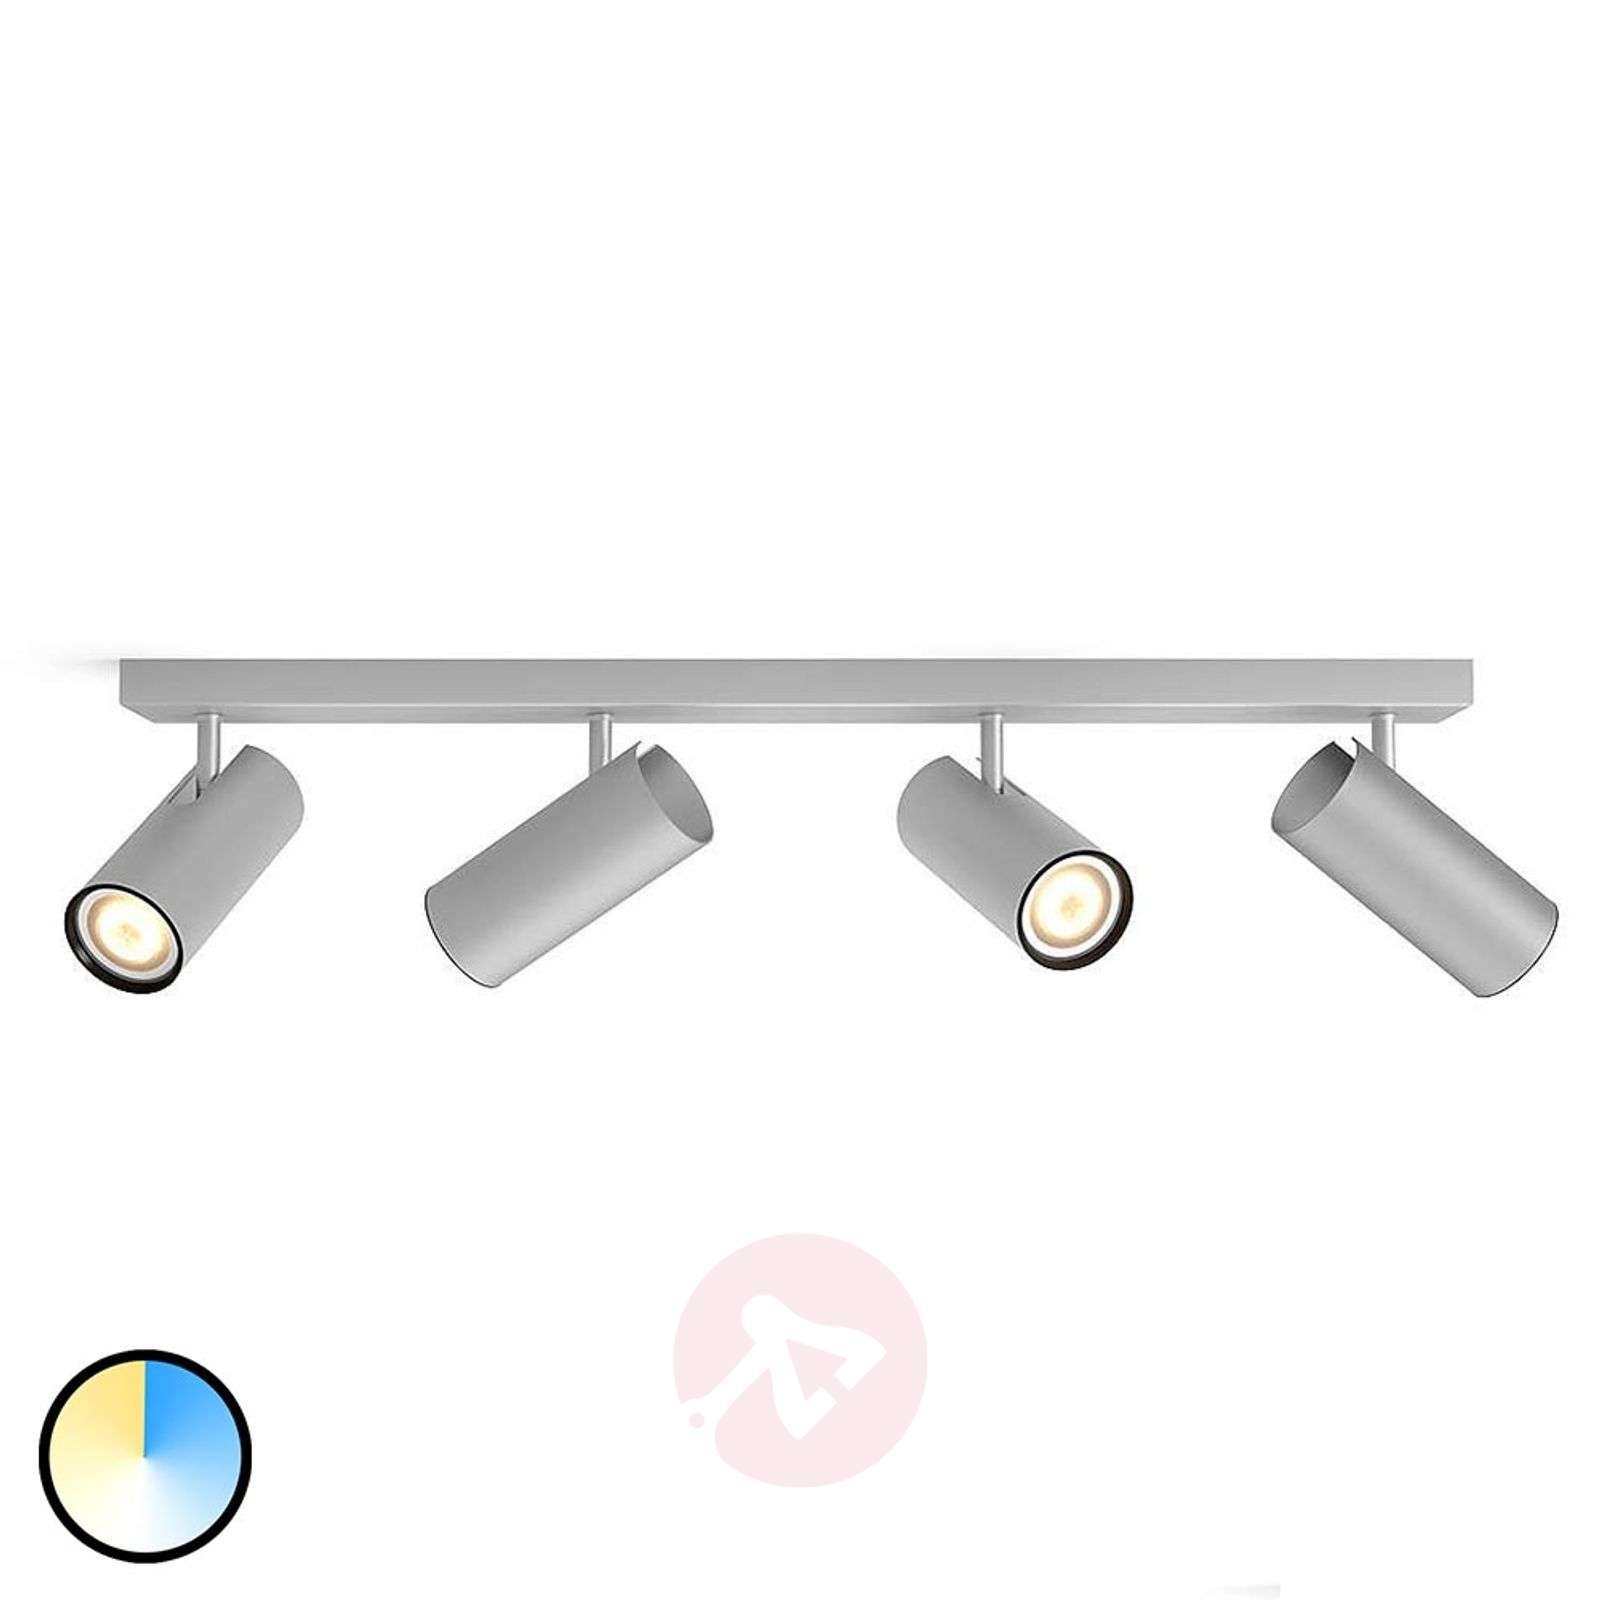 Philips Hue Buratto LED spot, alu,4-bulb, dimmer-7532045-01